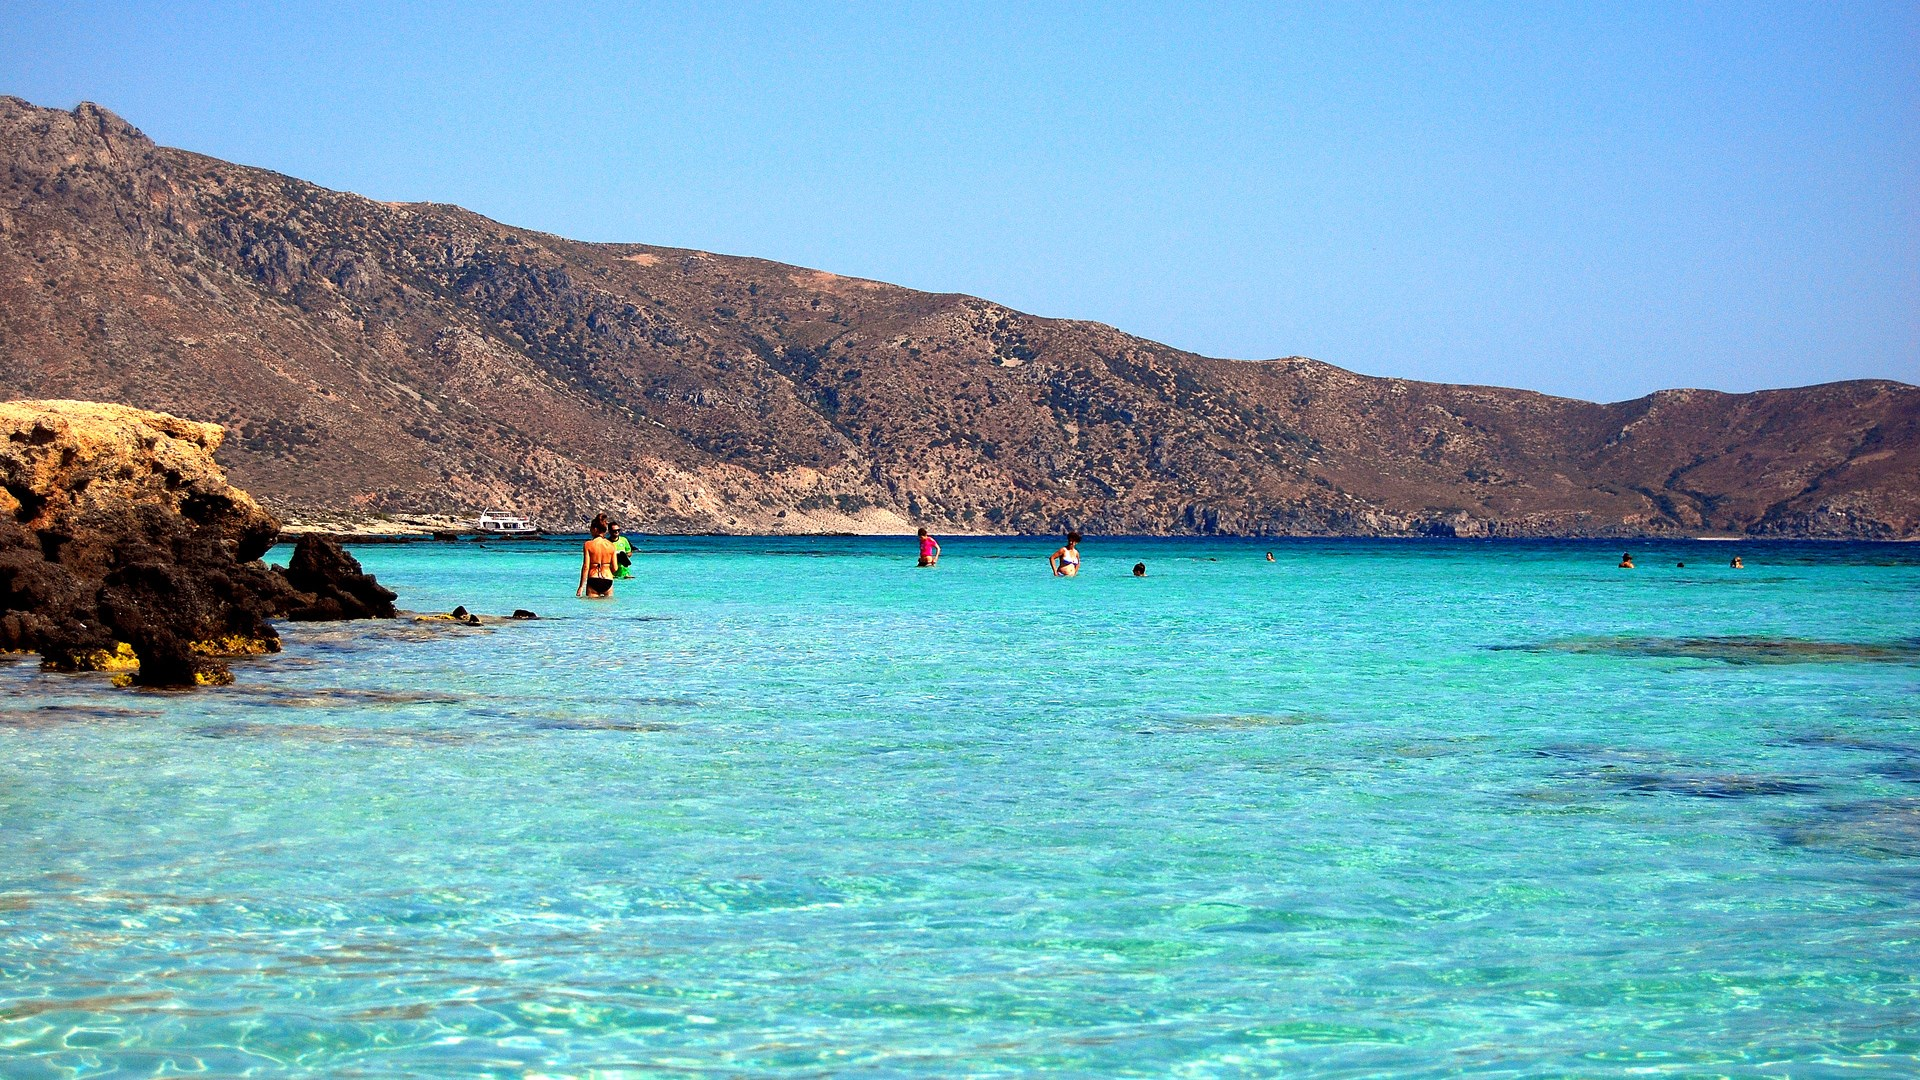 Elafonisi Beach, Chania-Crete | 23 Sep 2014 | Alargo